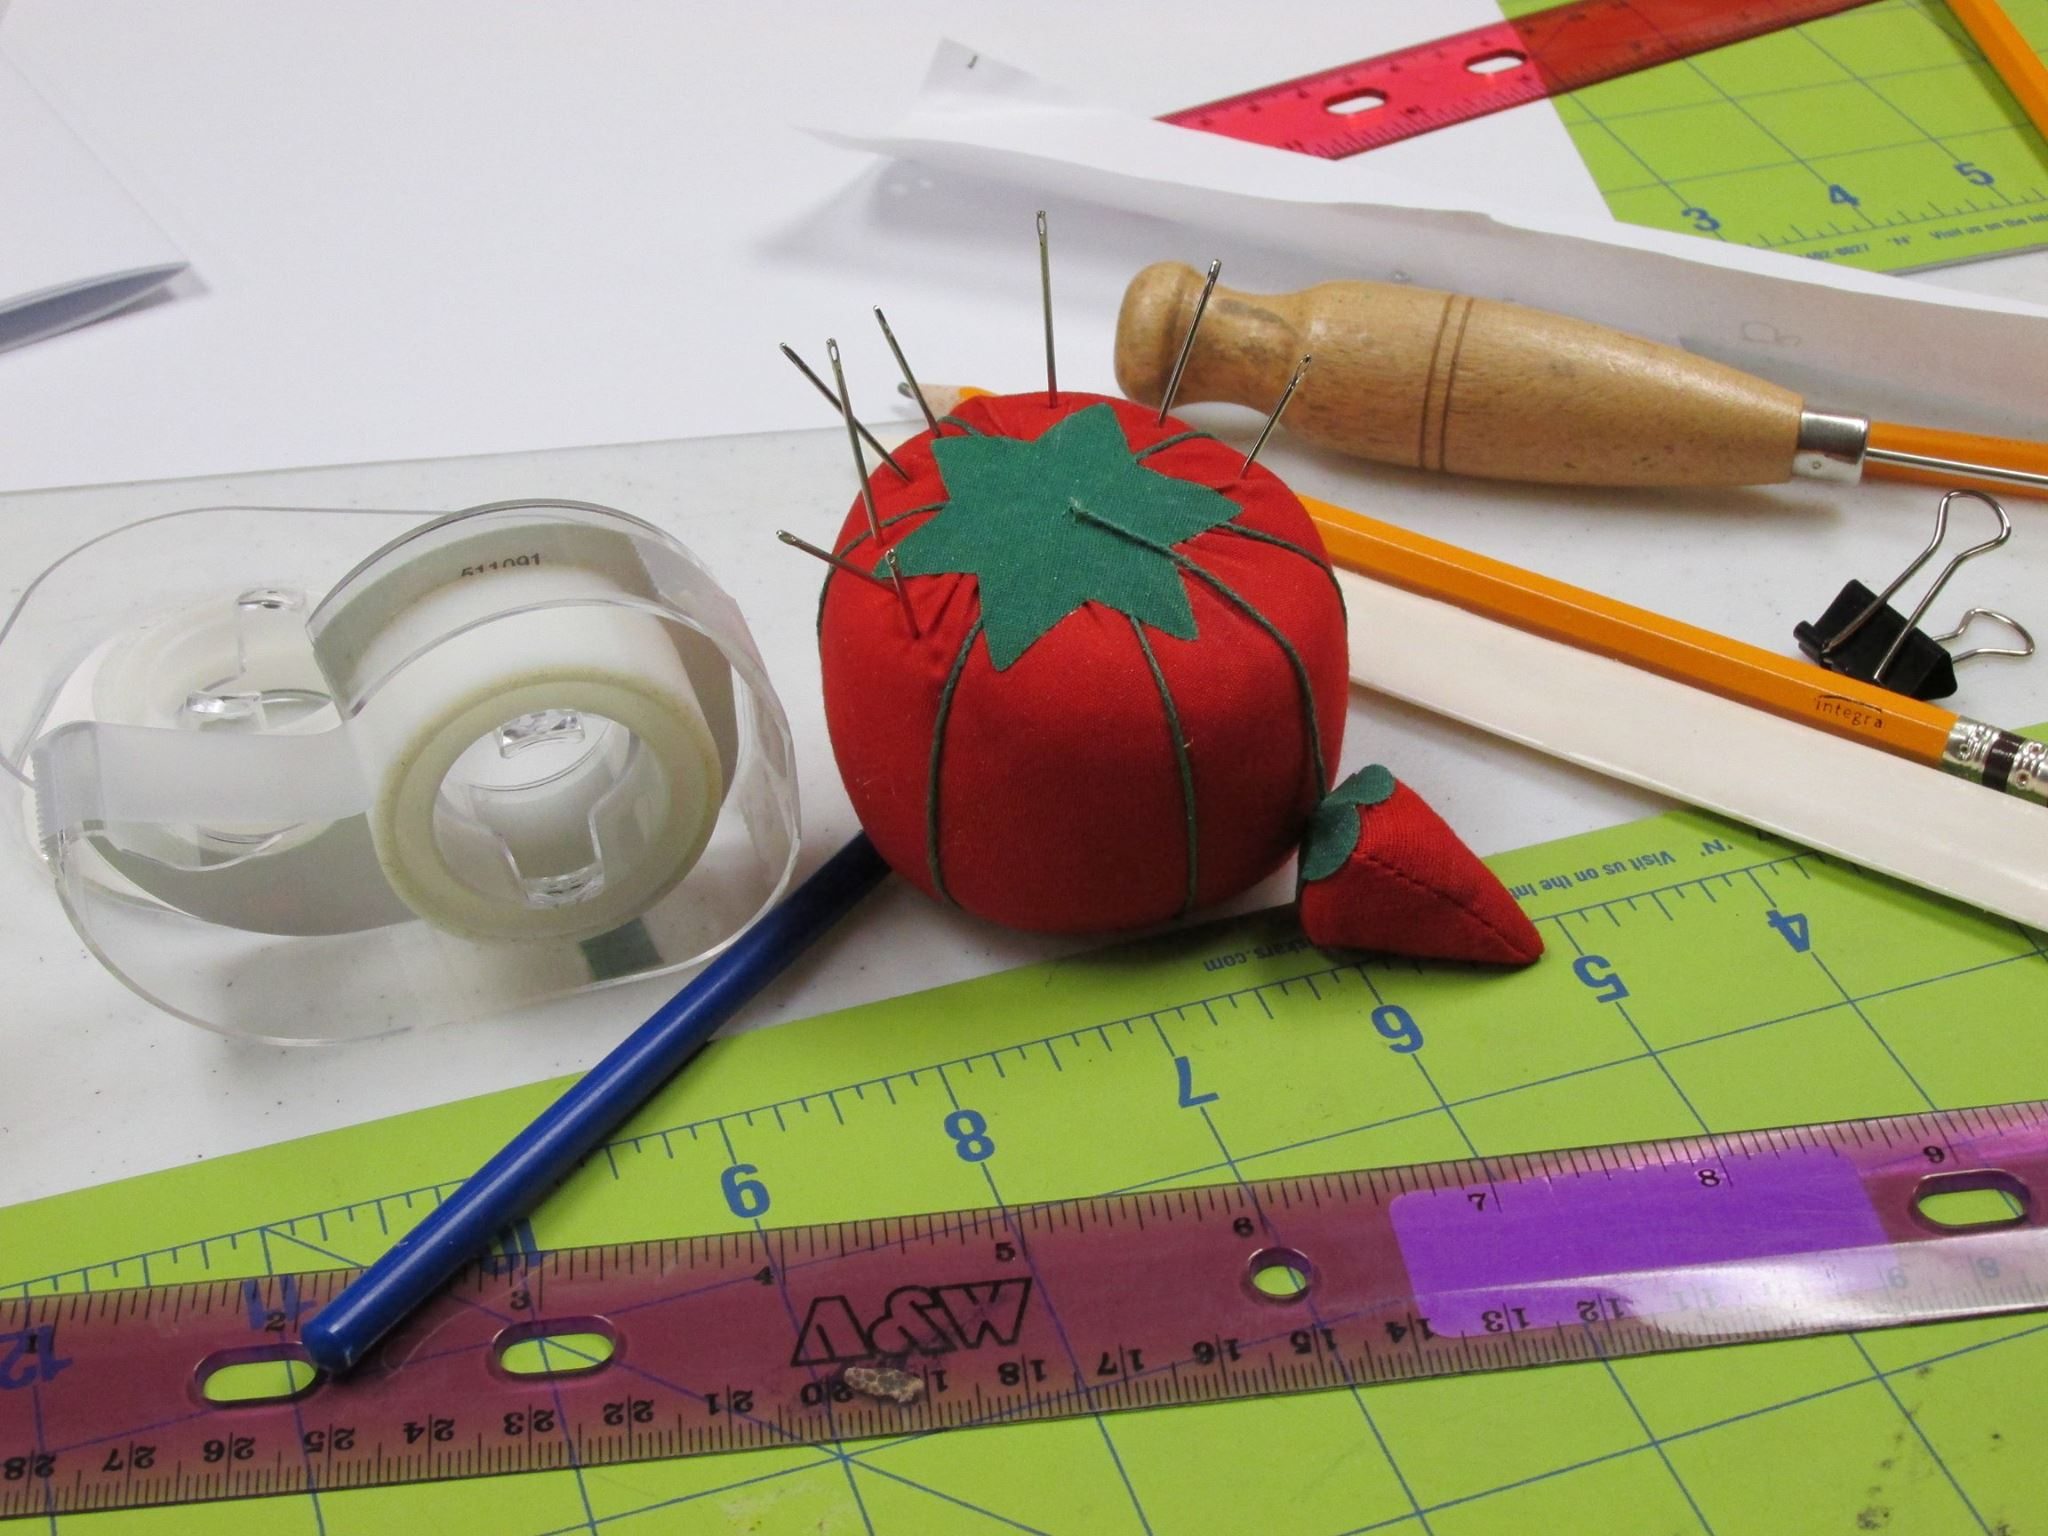 pincushion, ruler, tape and assorted crafting tools